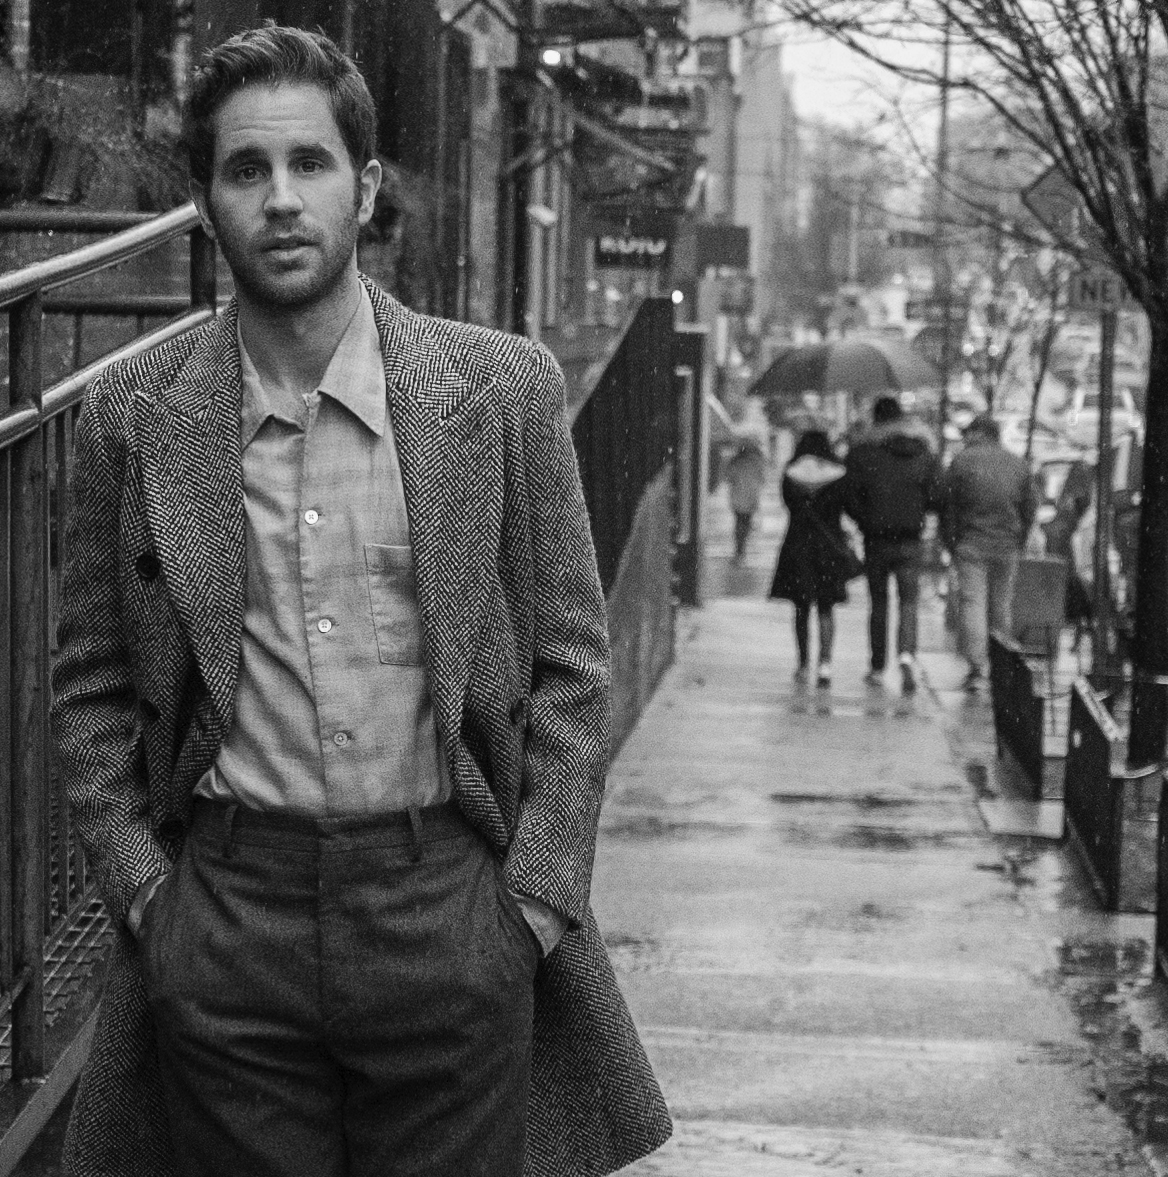 Musician and actor Ben Platt will be the Hasty Pudding Theatricals 2020 Man of the Year.